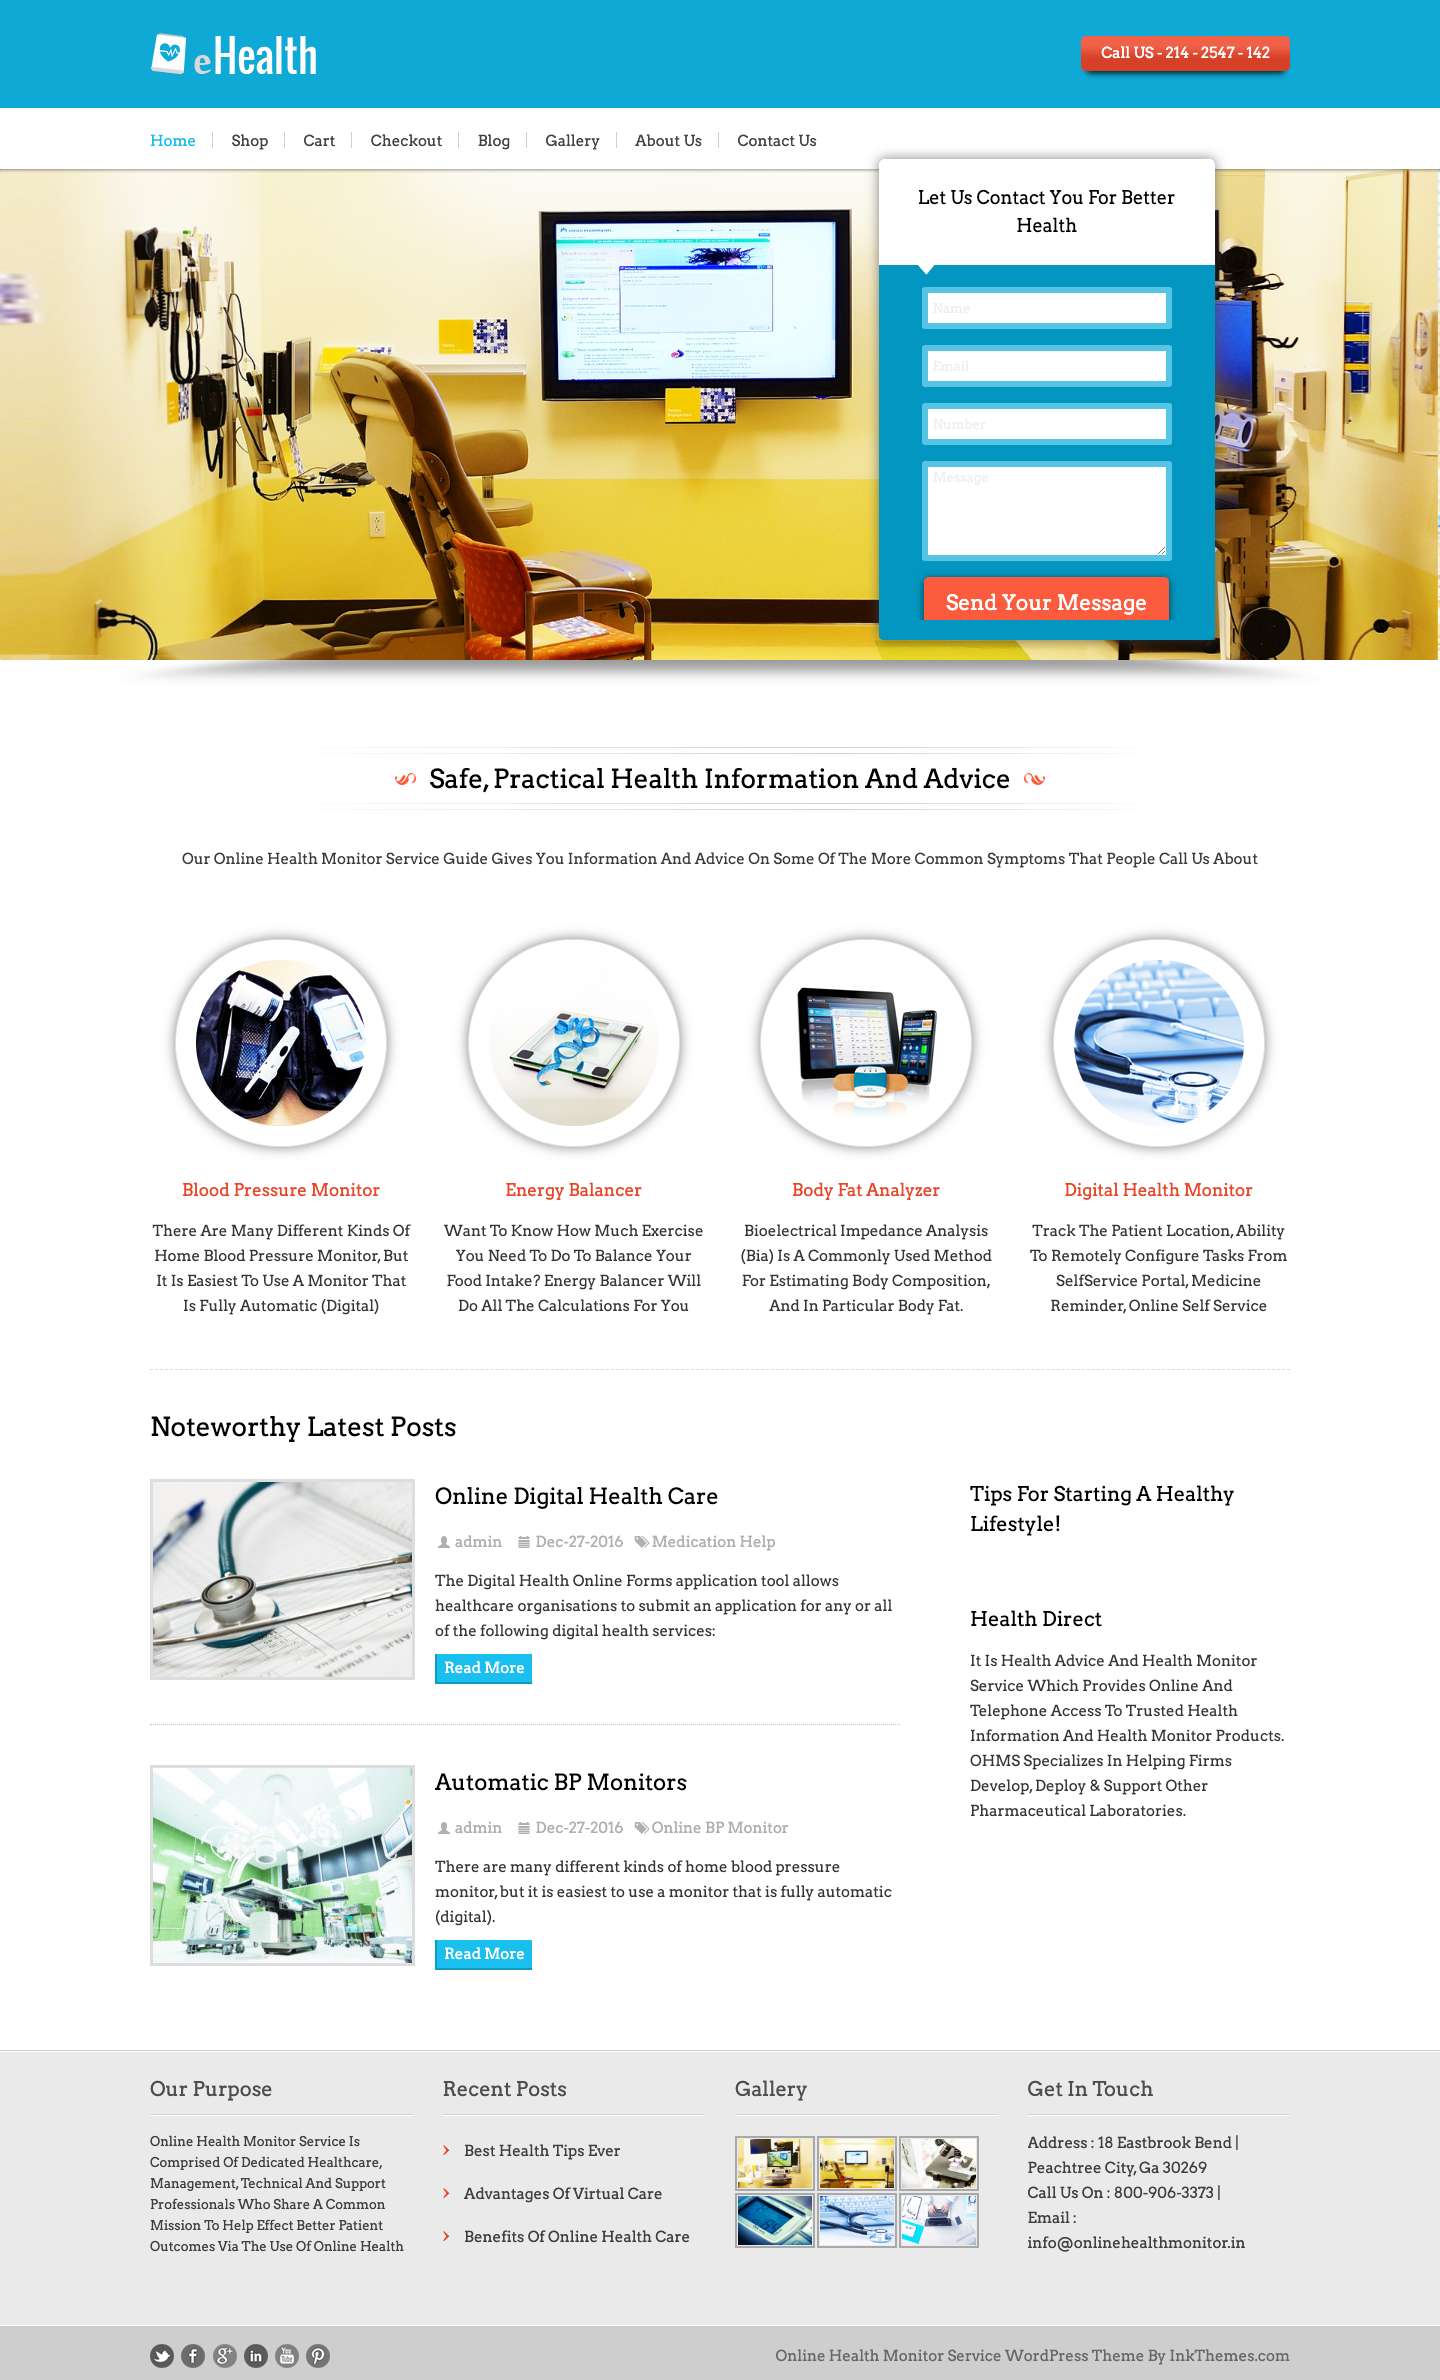 Ehealth Online Health Monitor Service Wordpress Theme And Template Website Design Inspiration Website Design Templates